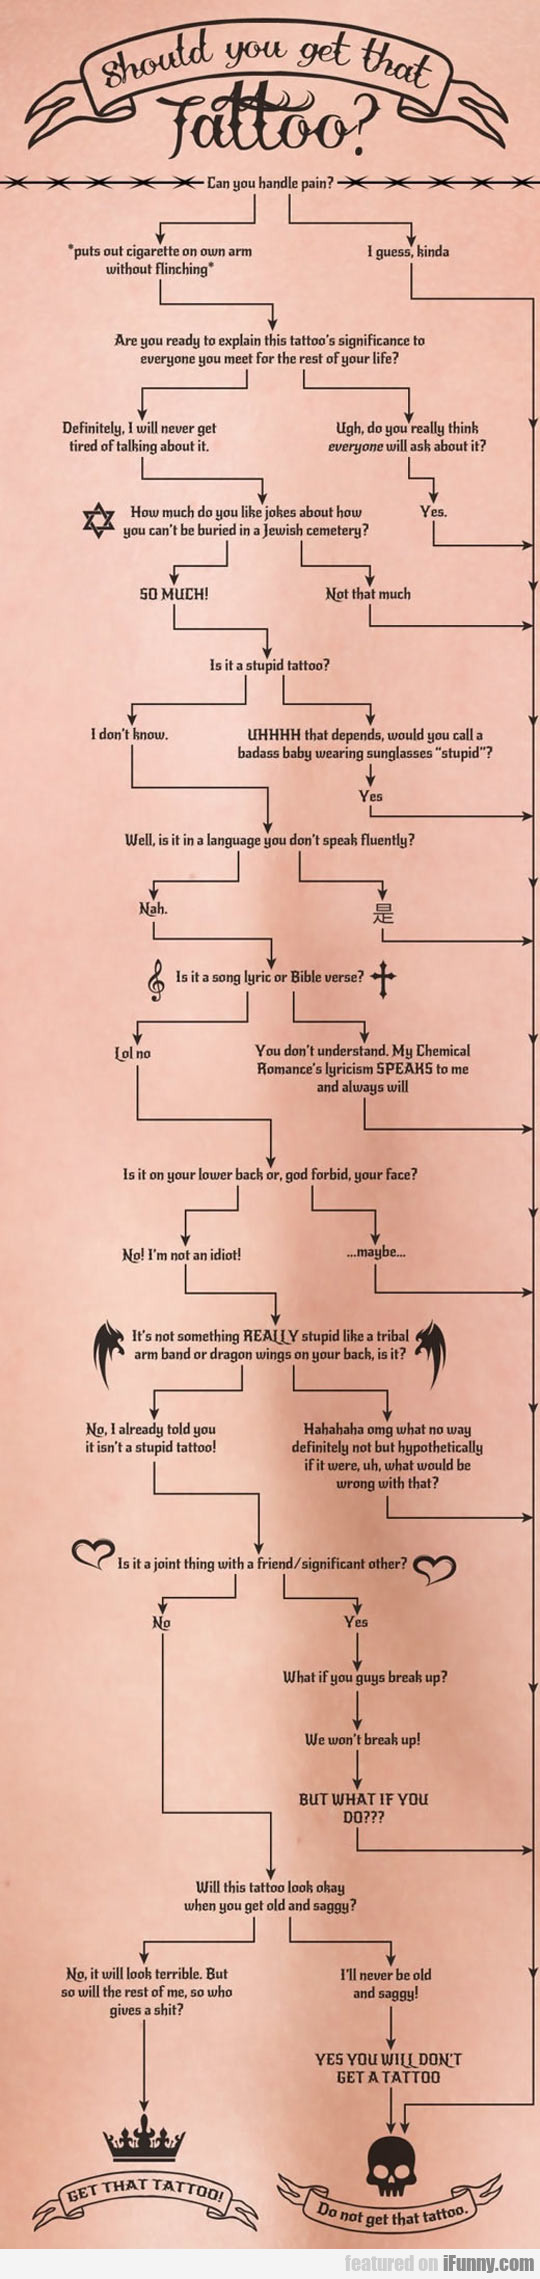 should you get that tattoo?